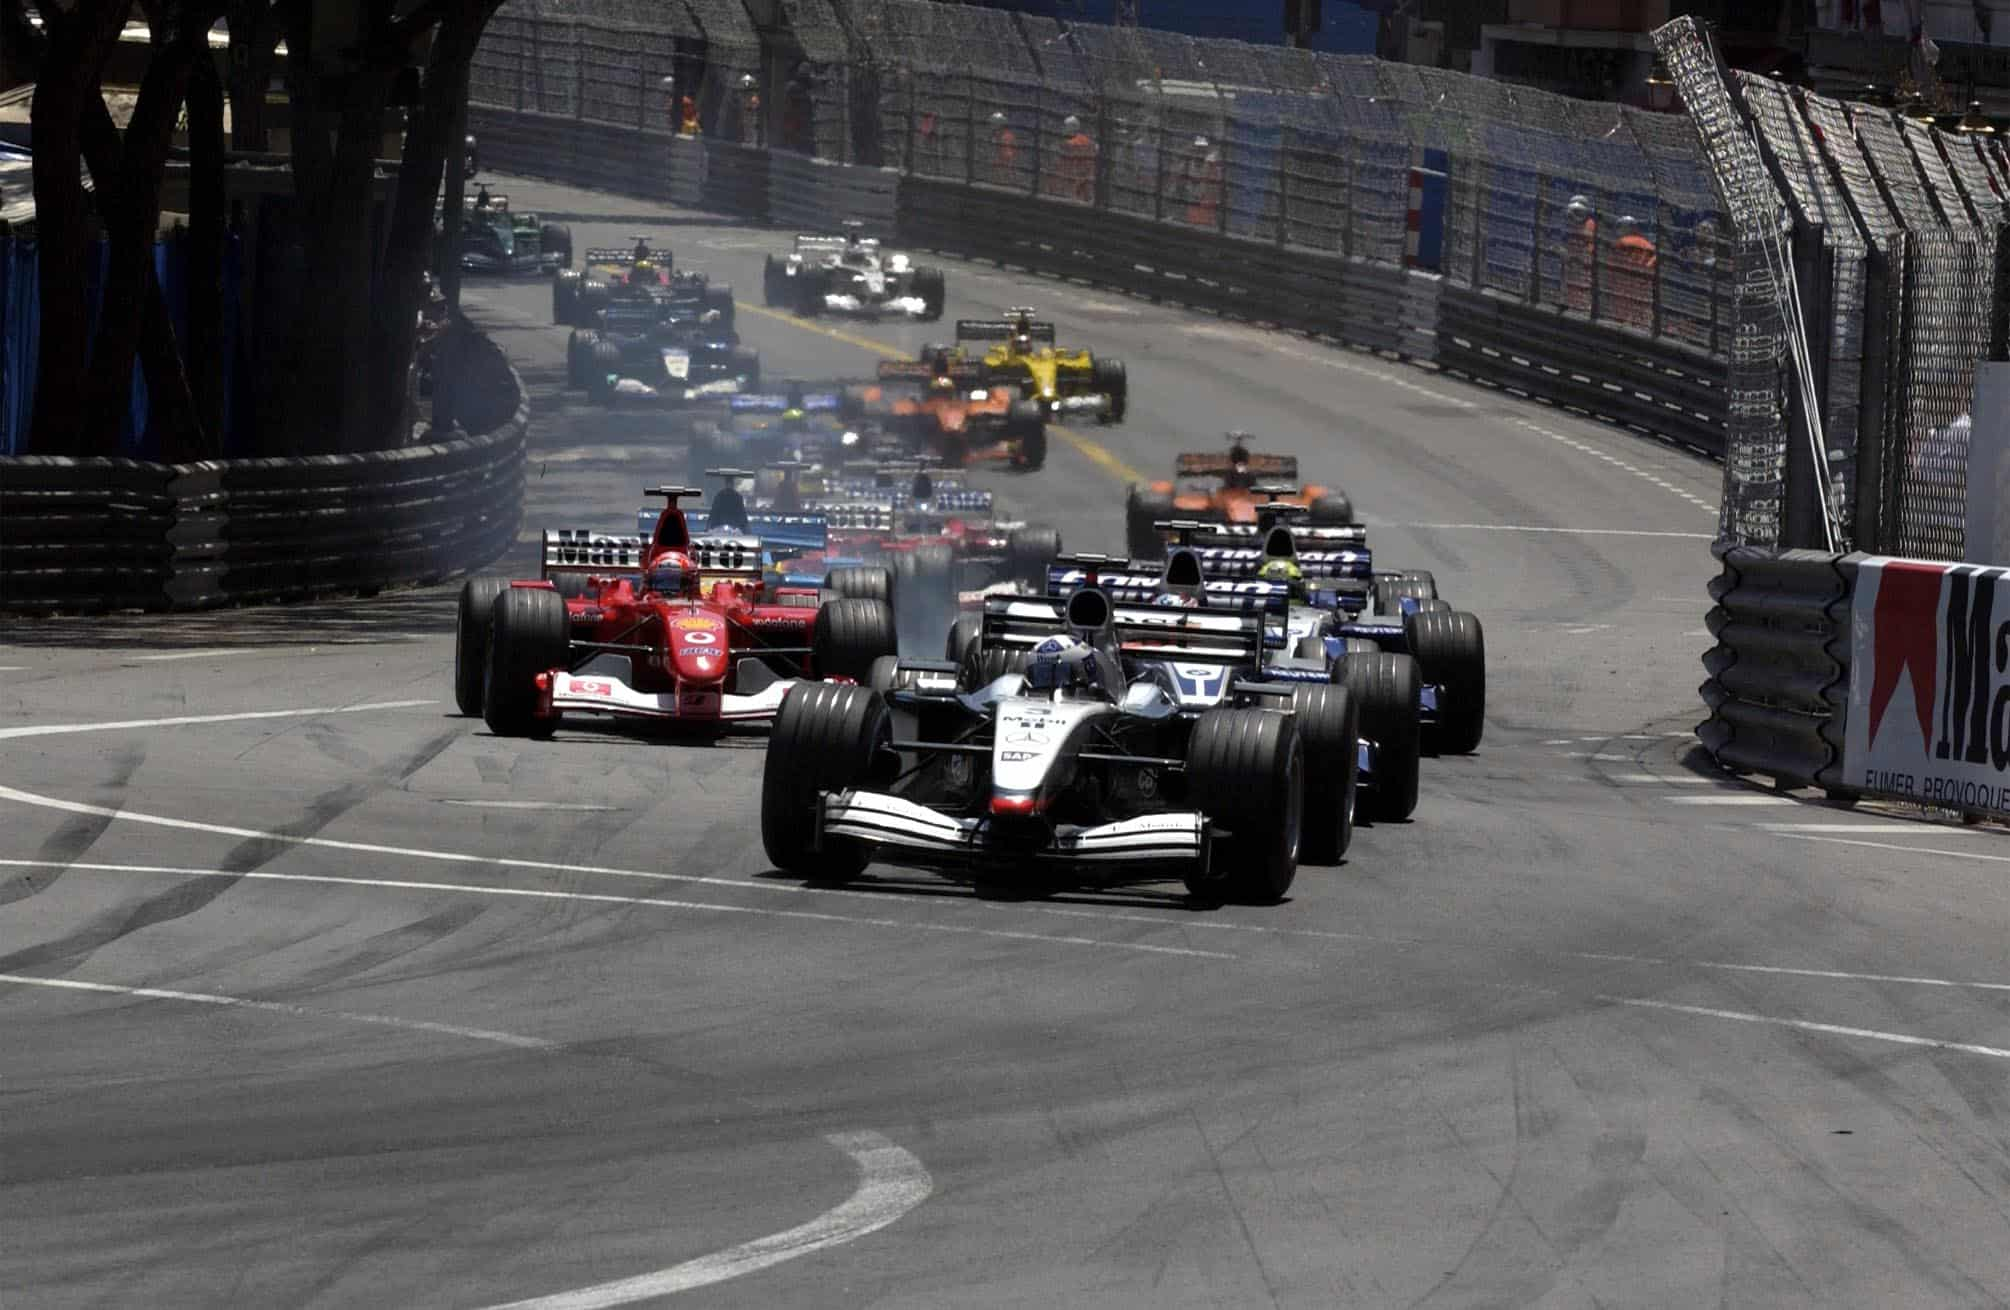 Monaco GP F1 2002 start Coulthard leads Montoya Photo Ferrari